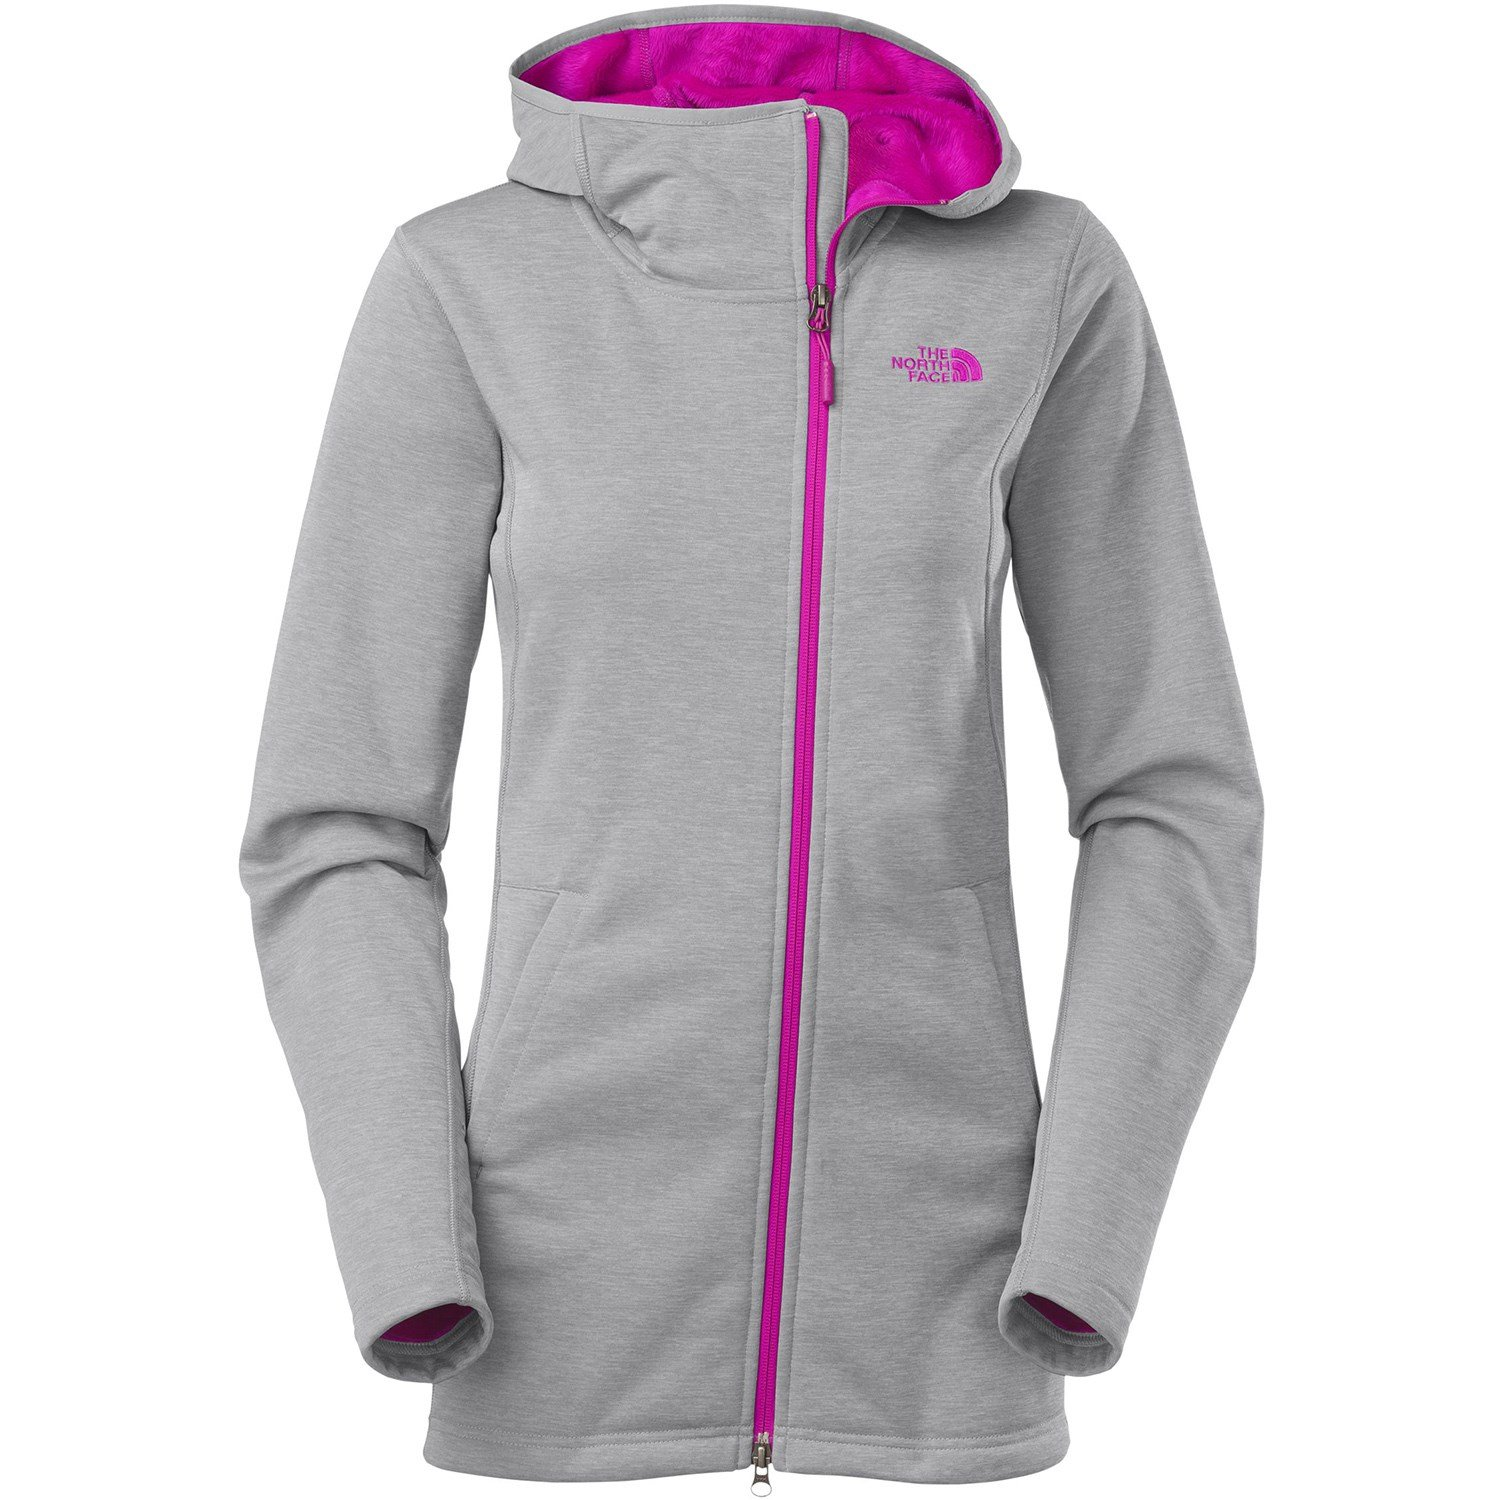 Womens North Face Sweatshirt Purple